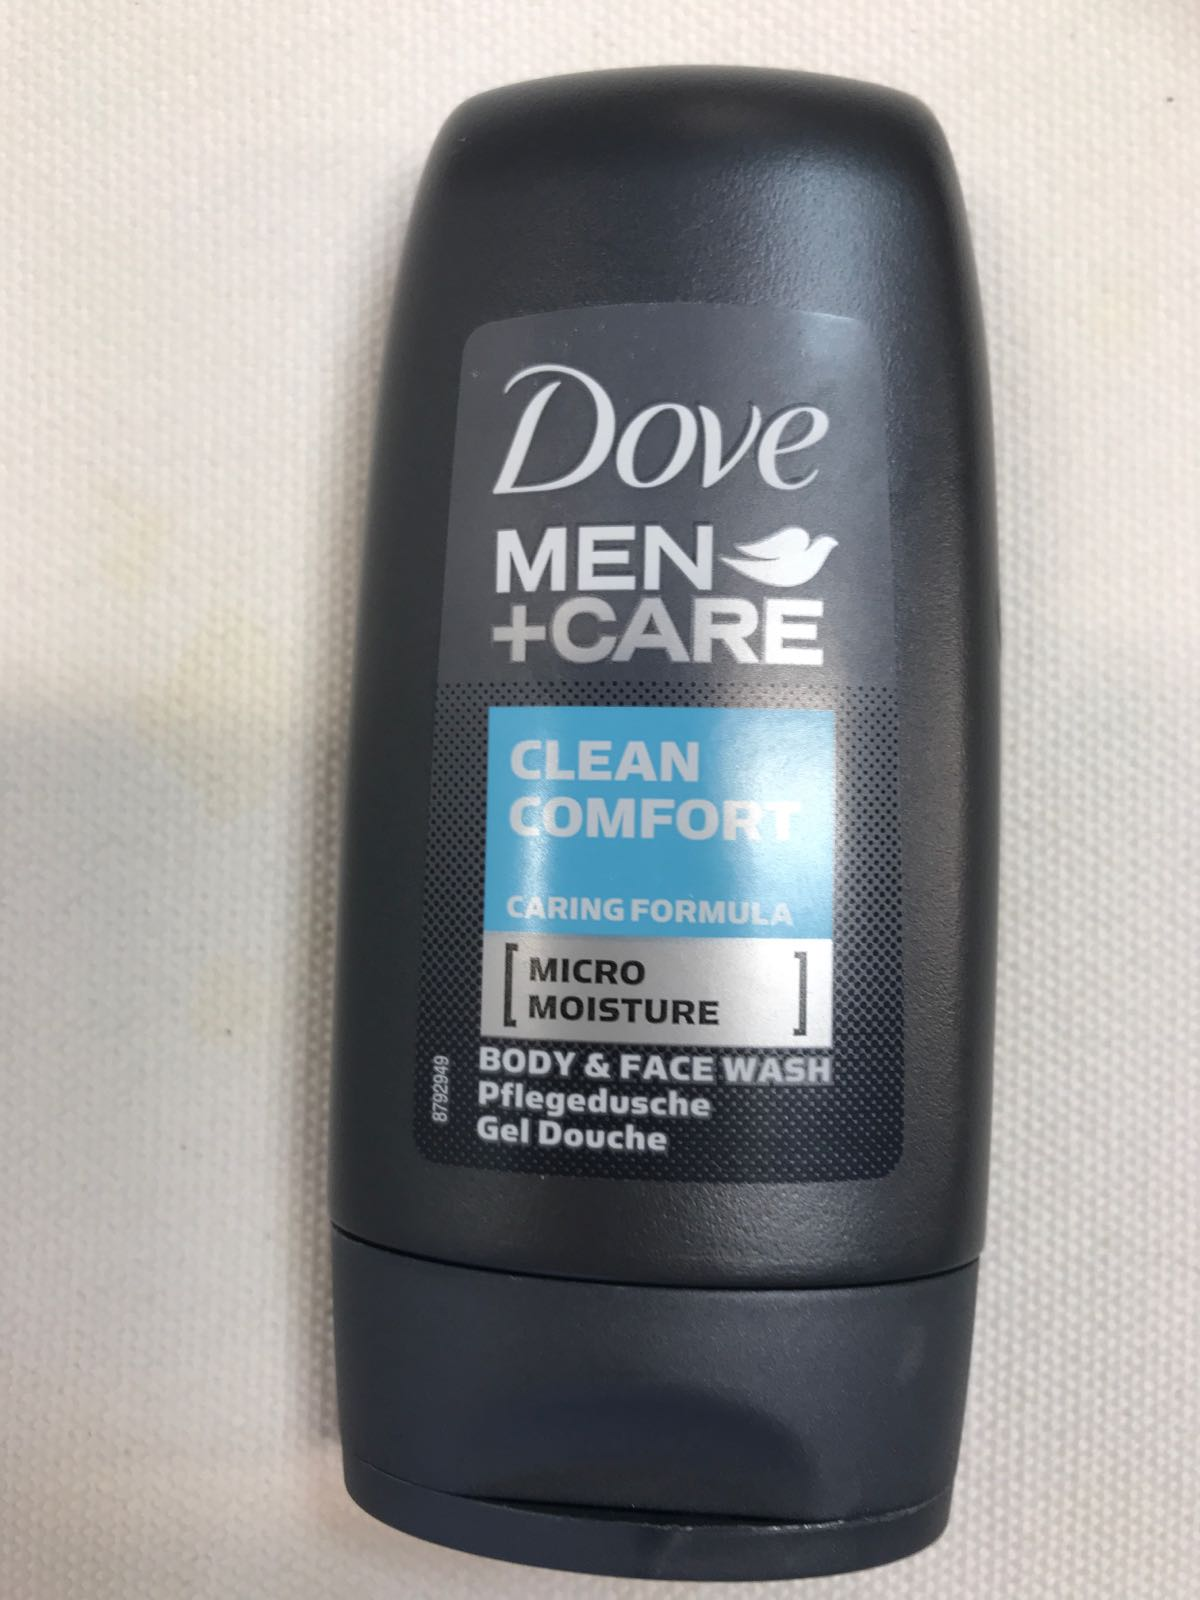 Body & facewash 55 ml - Dove men